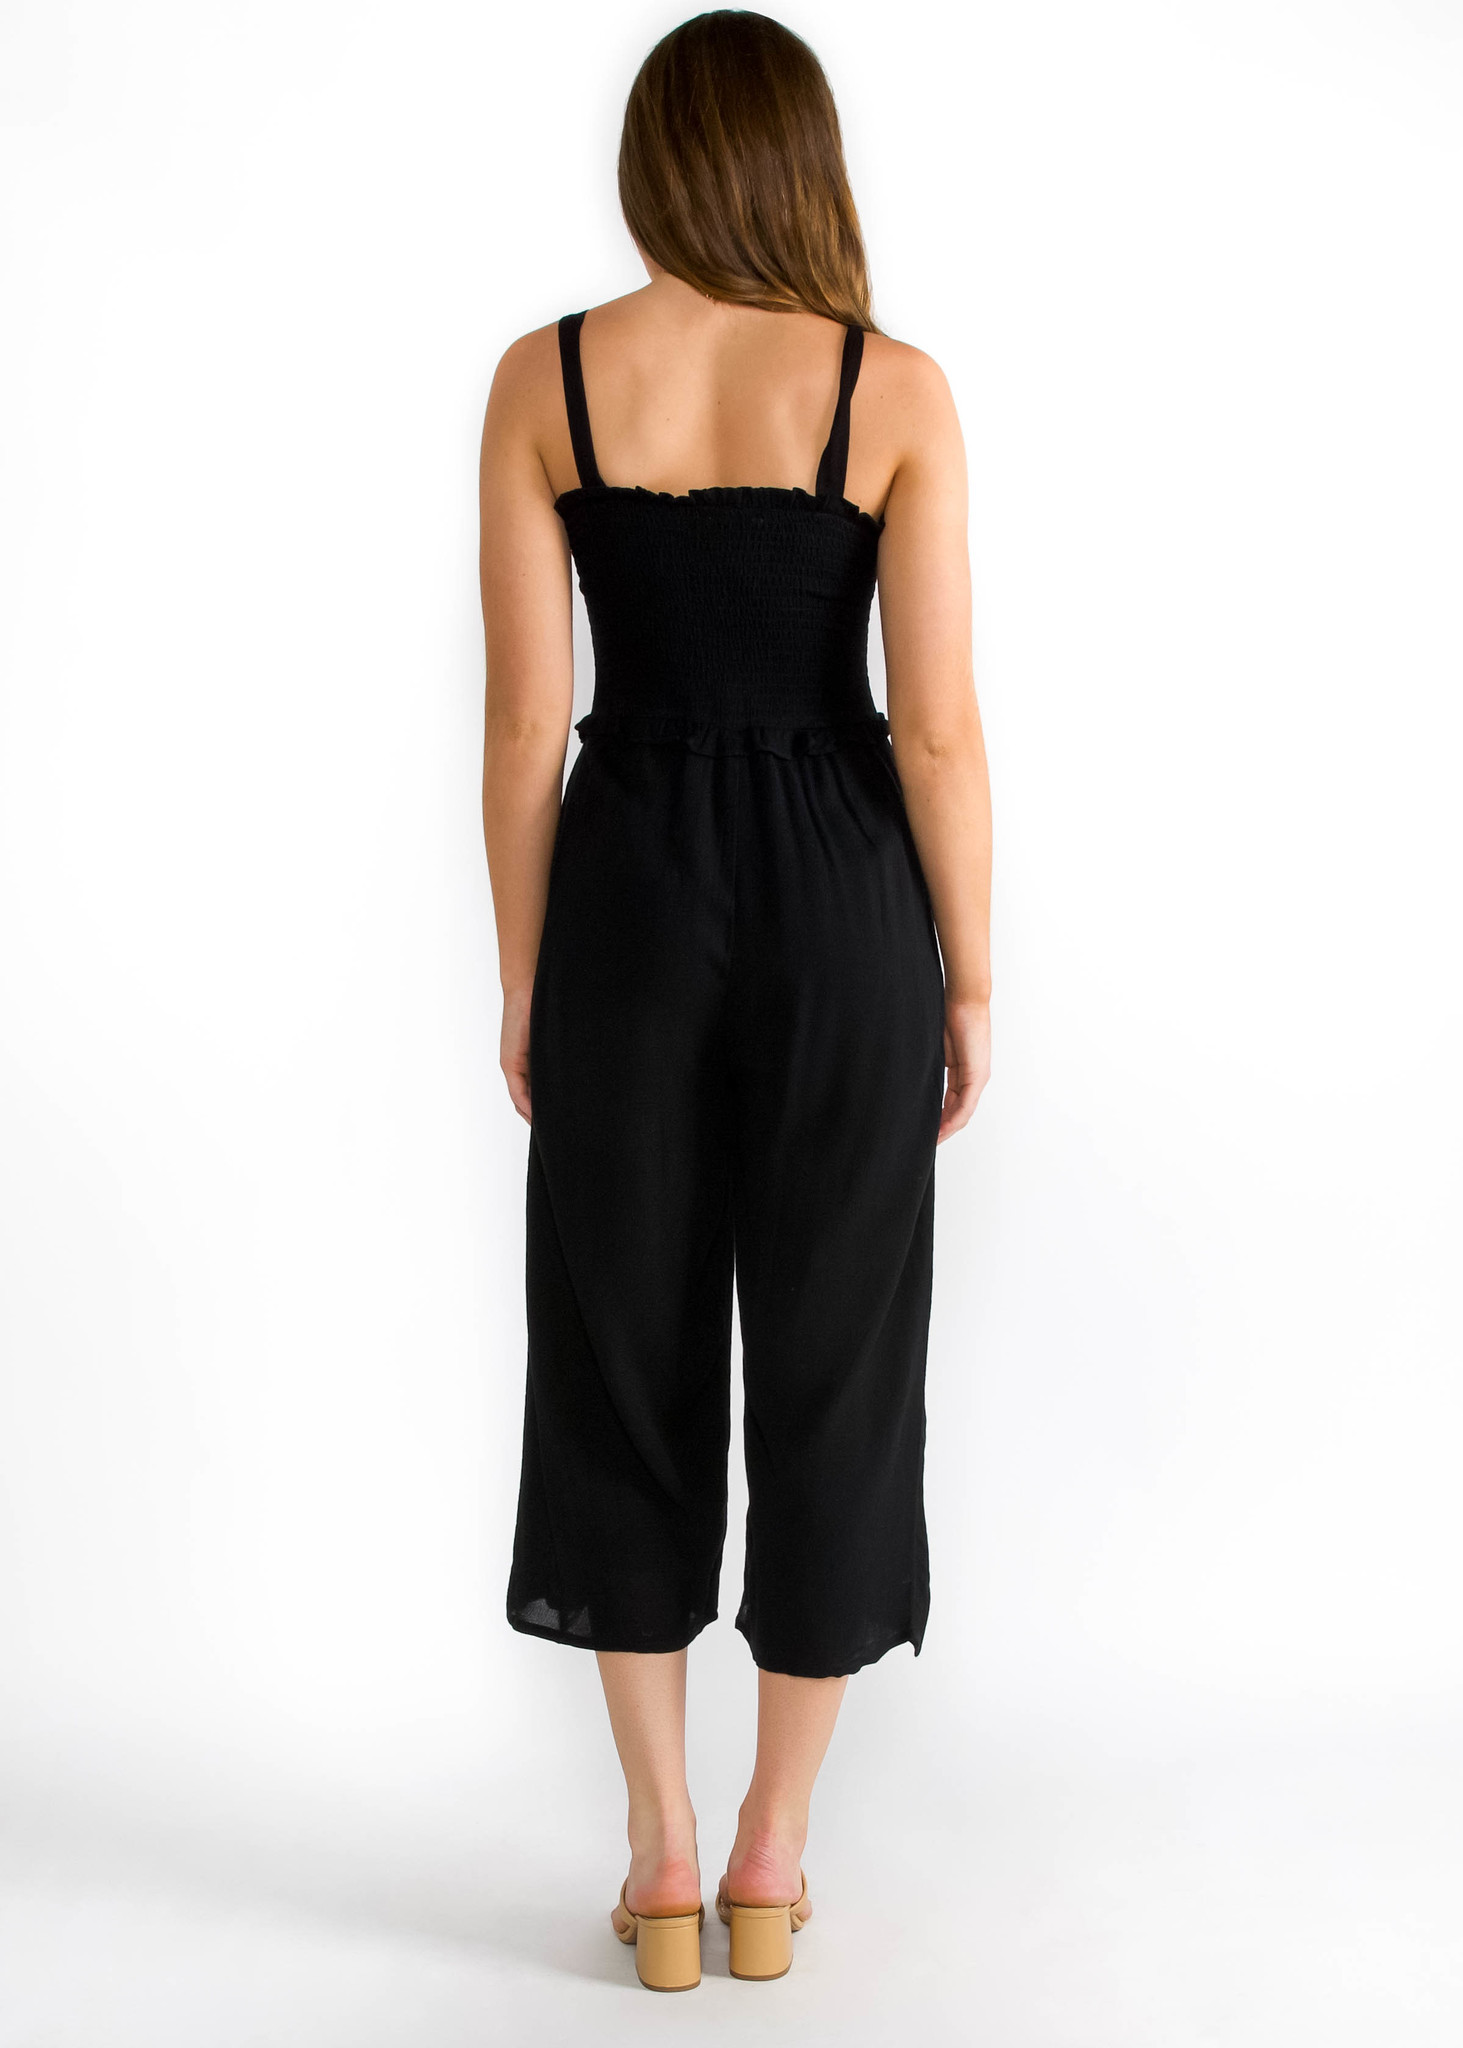 BEYOND CITY LIMITS JUMPSUIT